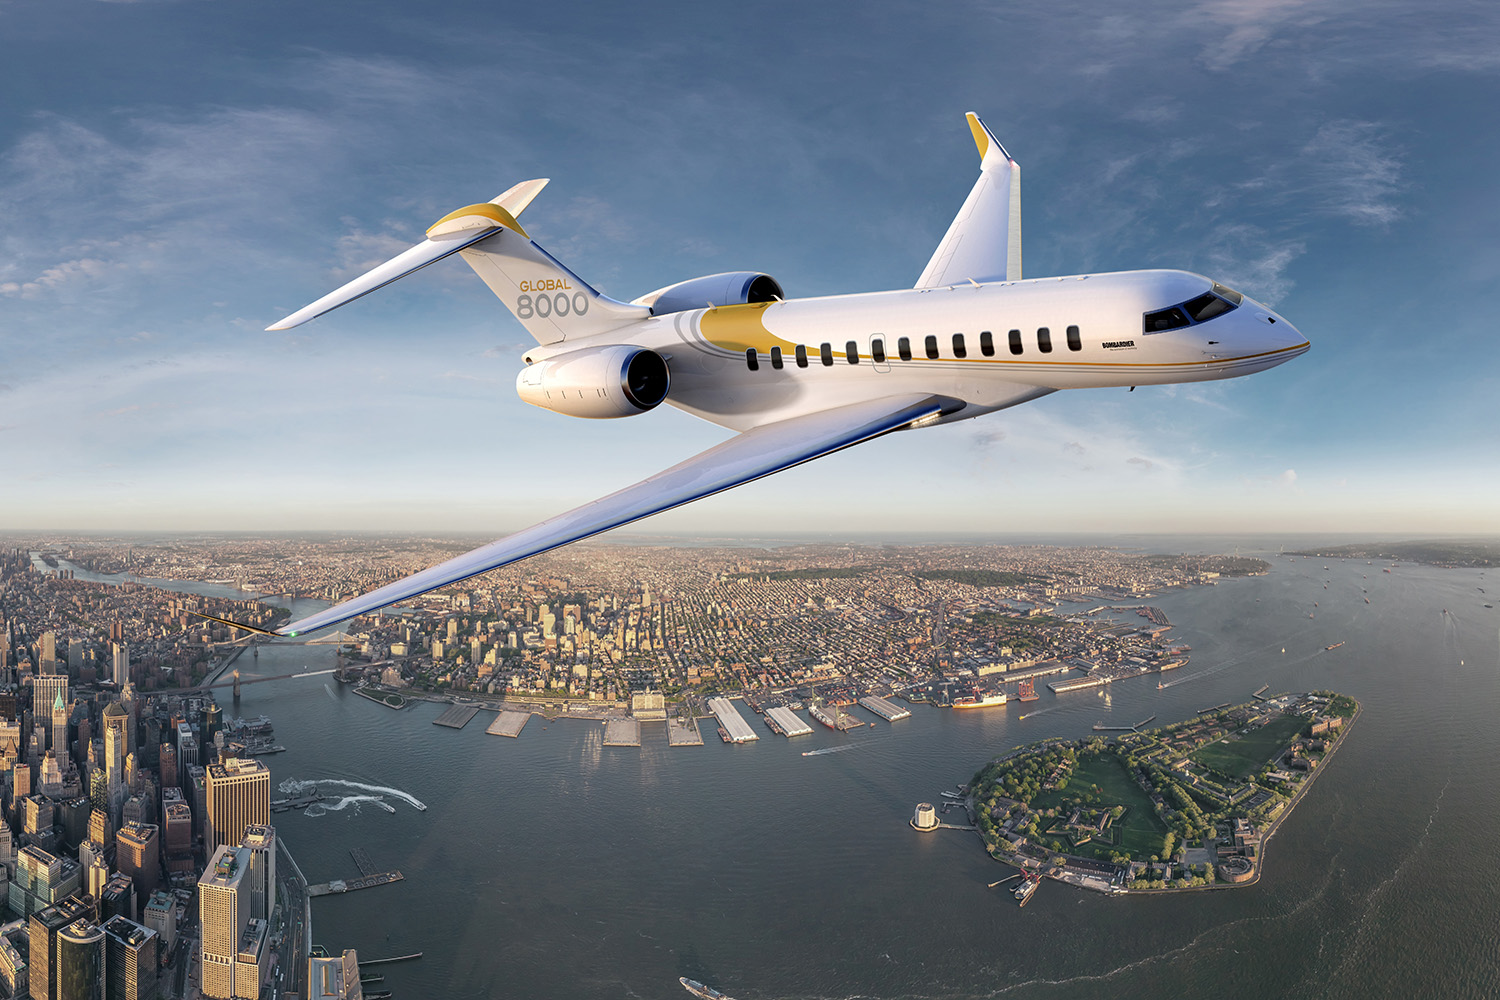 Bombardier Global 8000 private jet